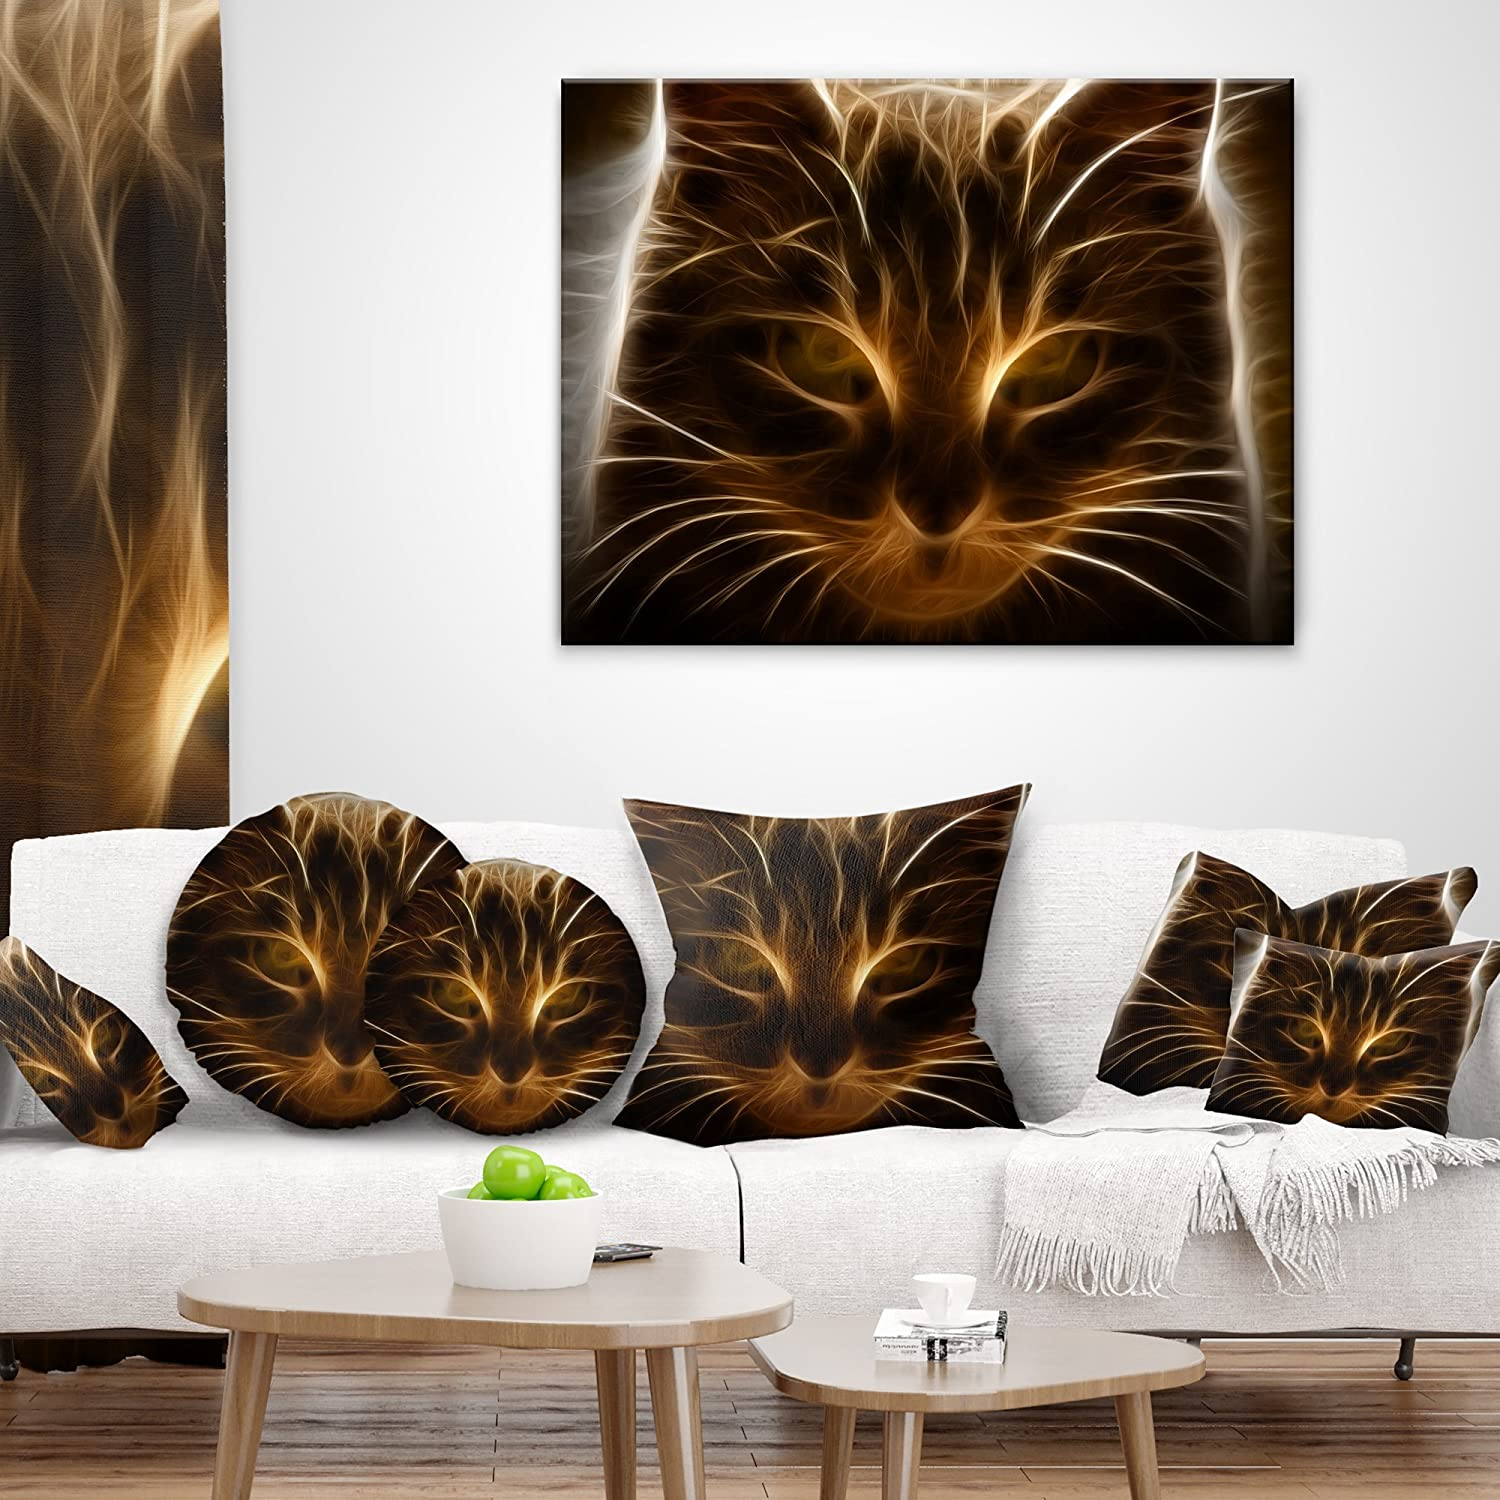 Insert Printed 18 x 18 Designart CU13356-18-18 Glowing Fractal Cat Illustration Animal Cushion Cover for Living Room Sofa Throw Pillow